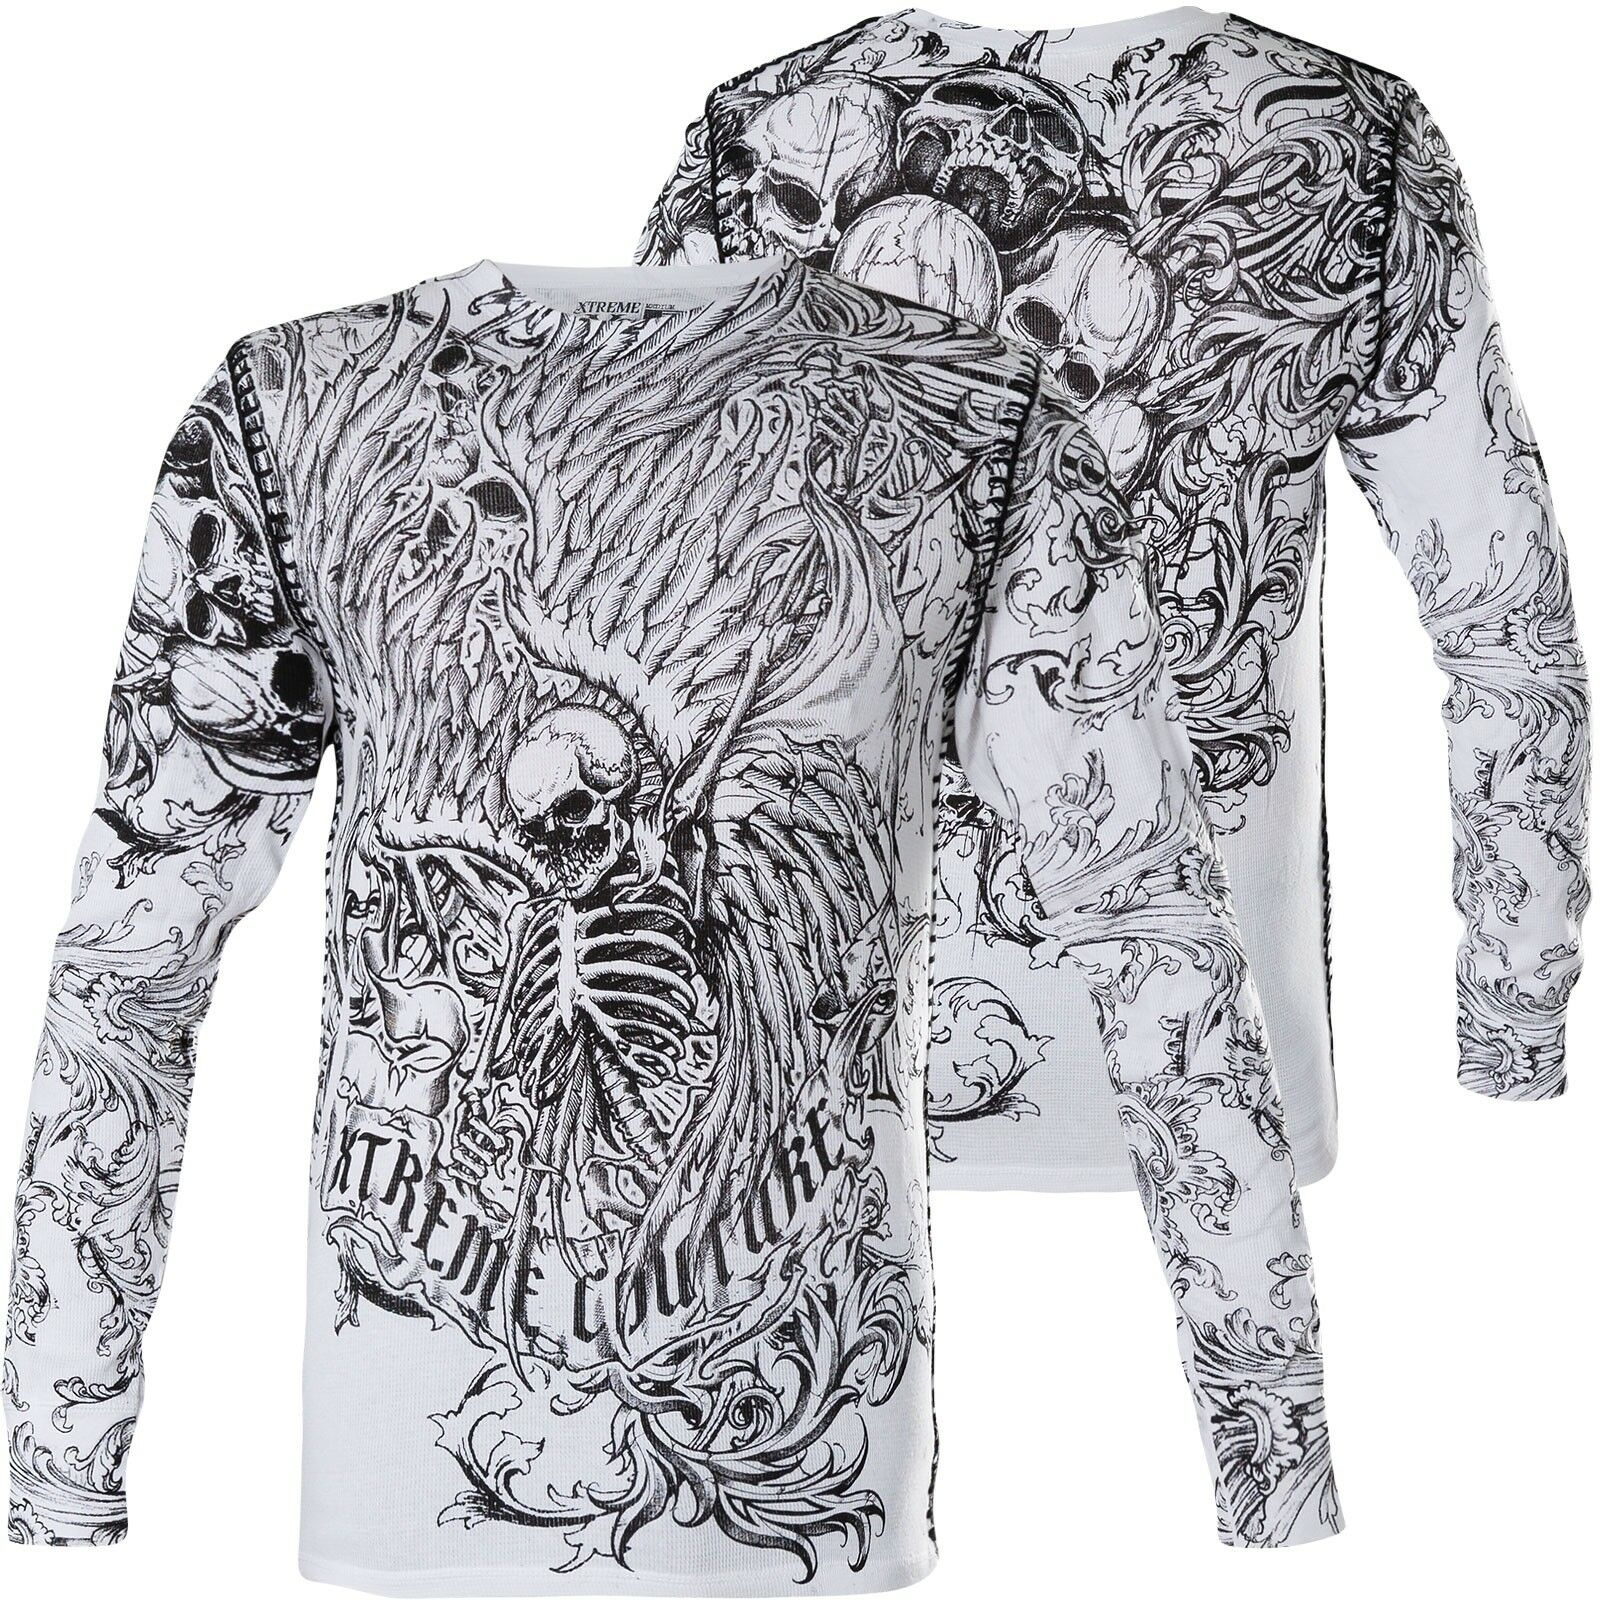 XTREME COUTURE BY AFFLICTION Pullover The Accuser Weiß Sweatshirts